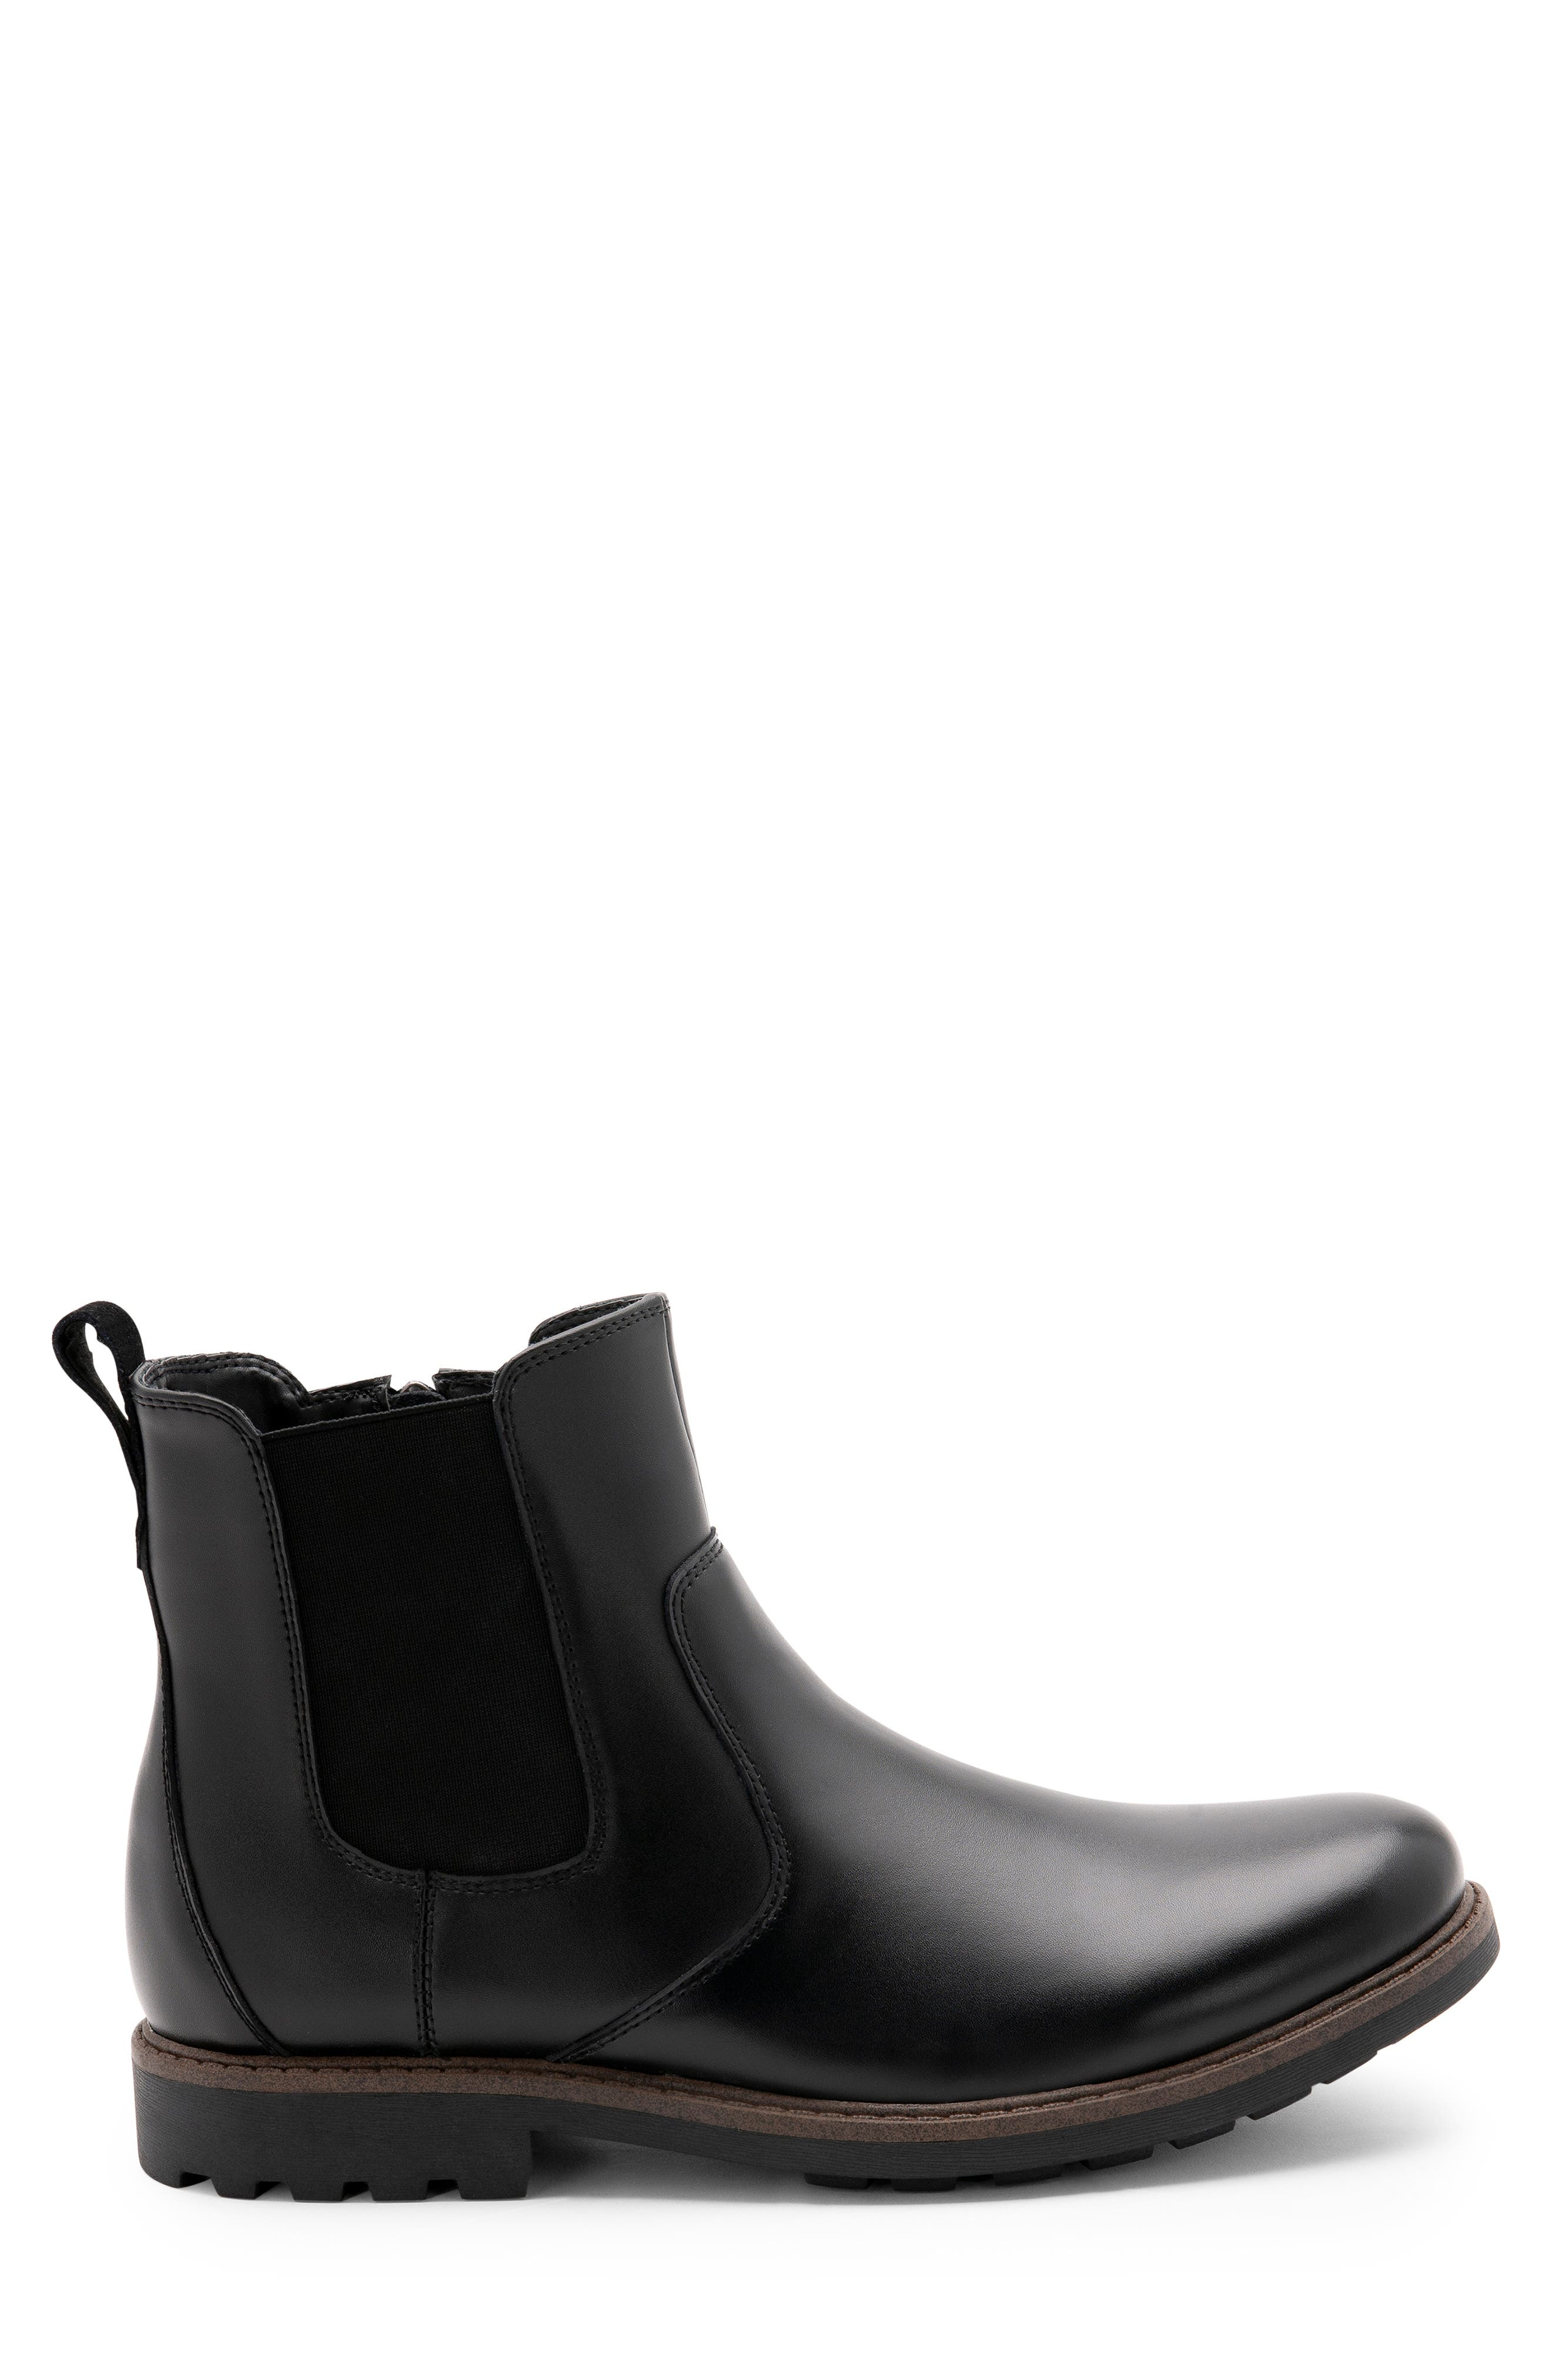 BLONDO, Shadow Waterproof Chelsea Boot, Alternate thumbnail 3, color, BLACK LEATHER